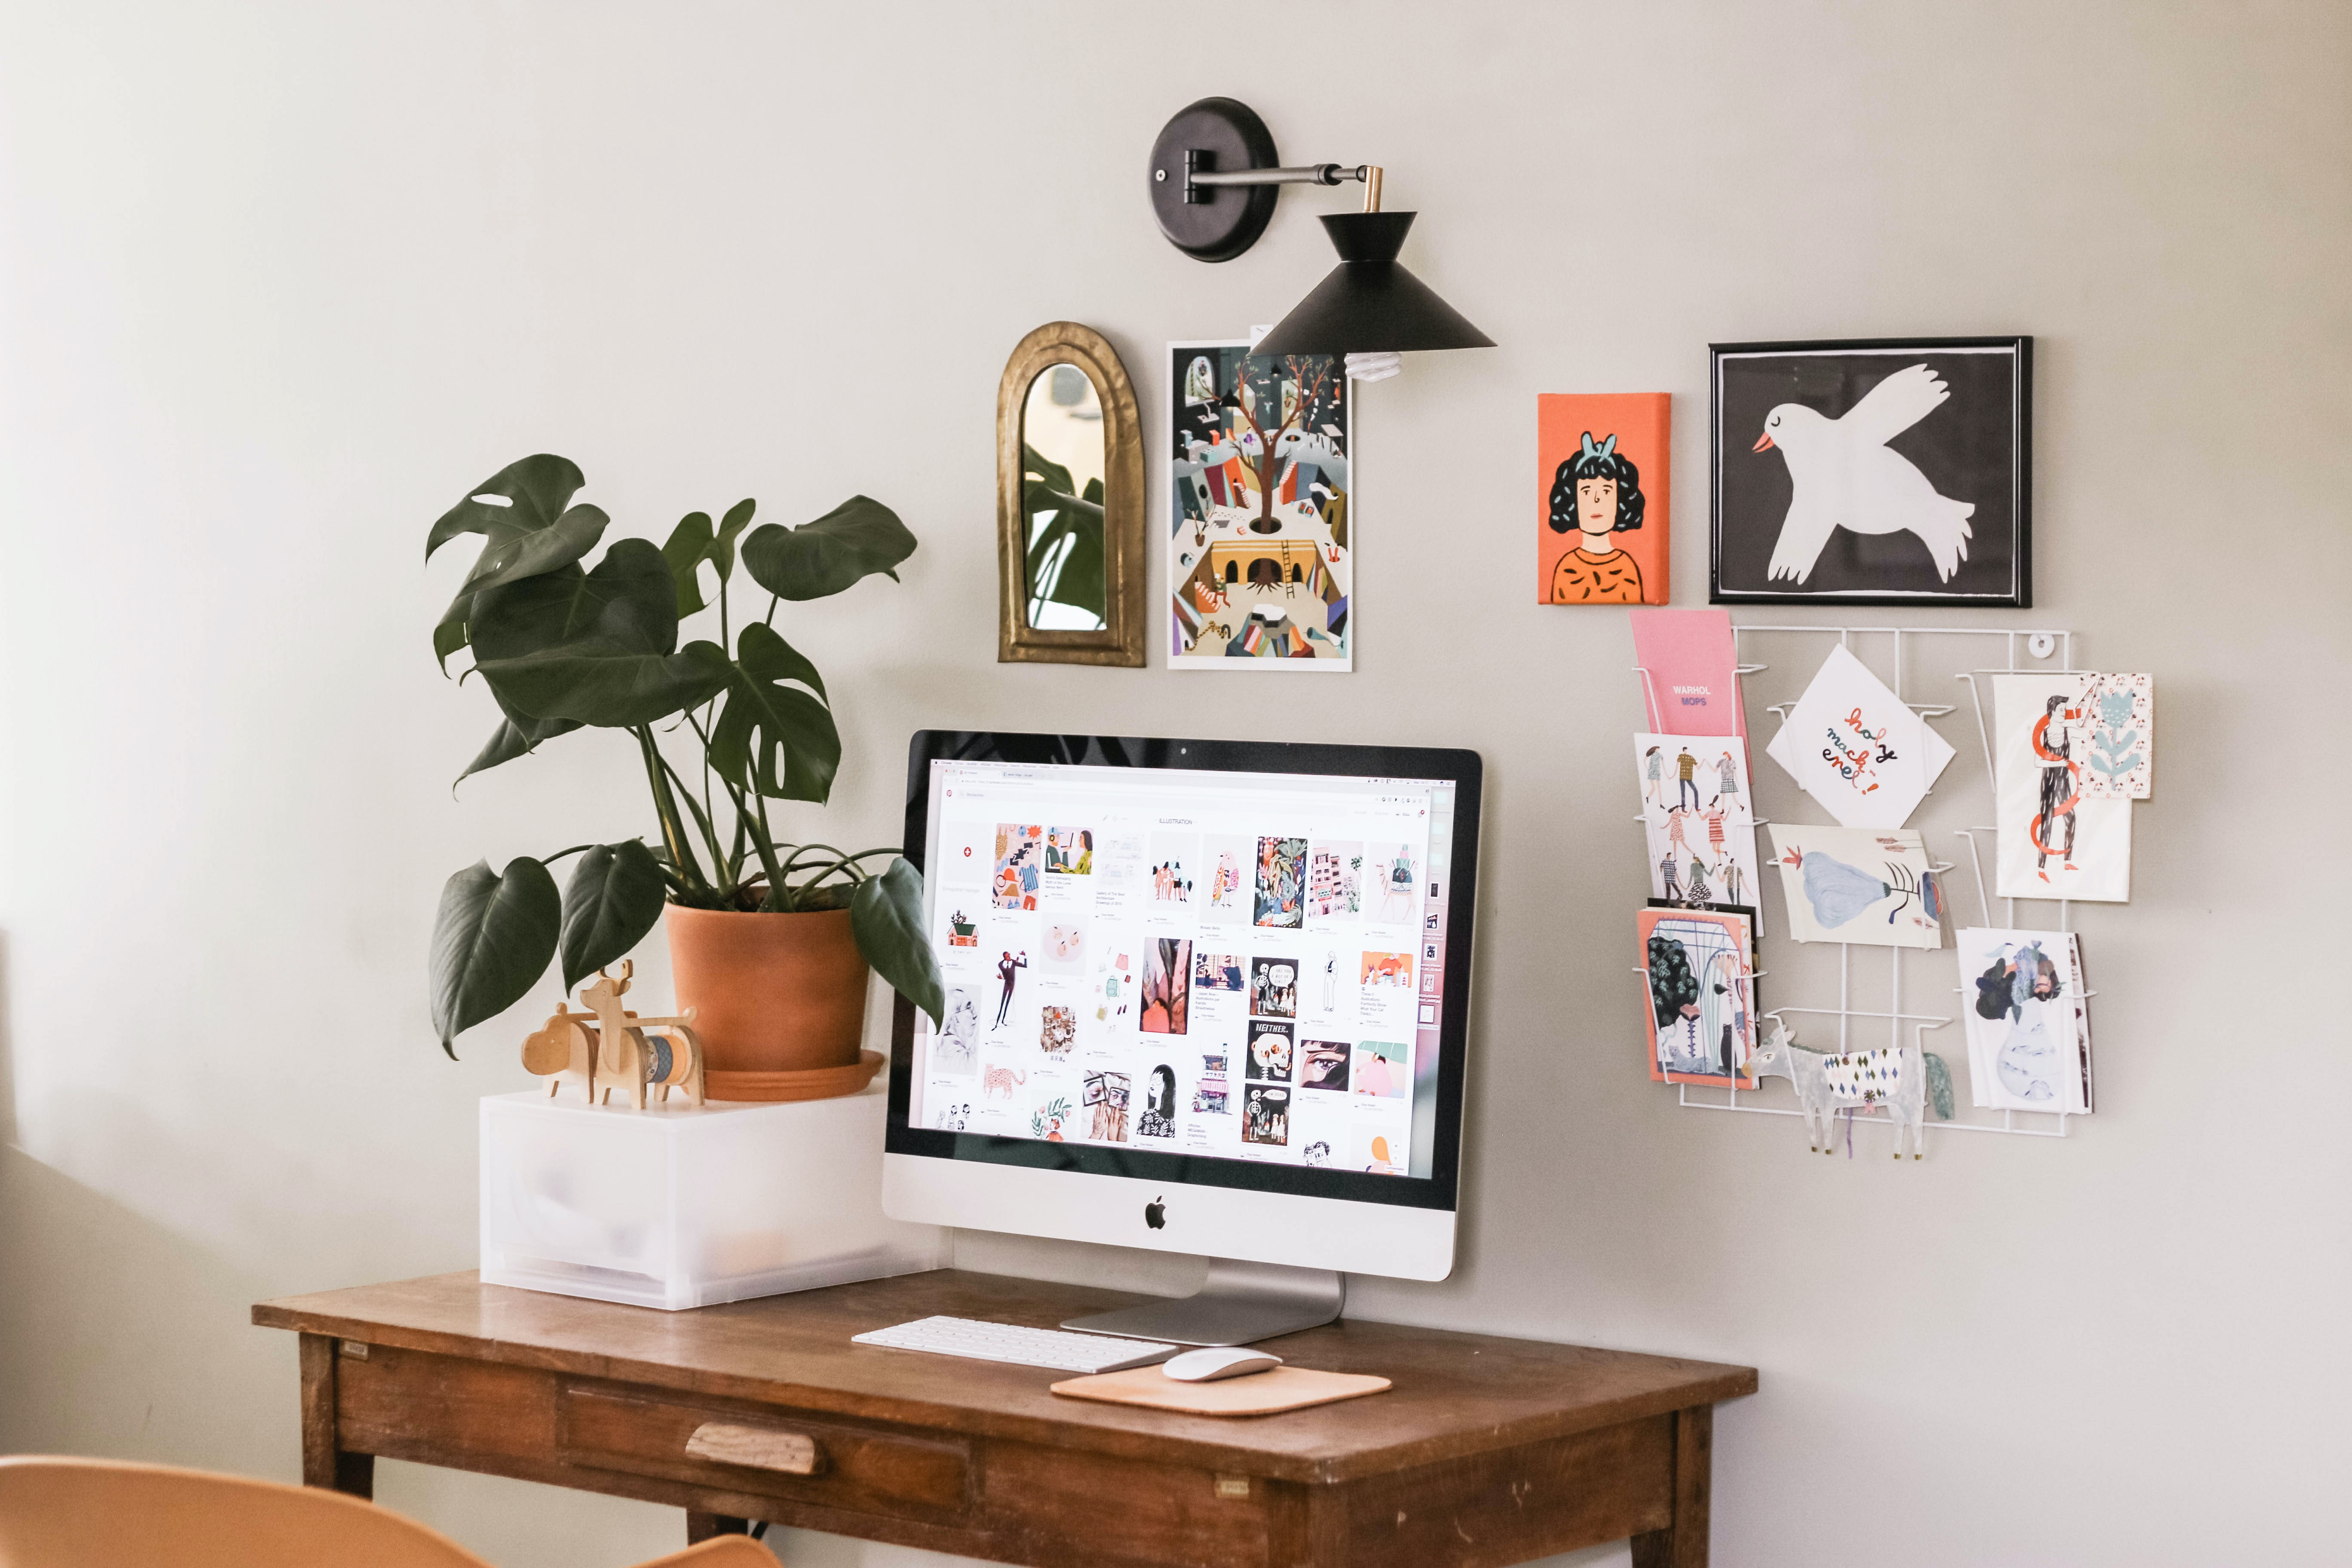 A quaint computer workspace with colorful pictures and postcards on the wall